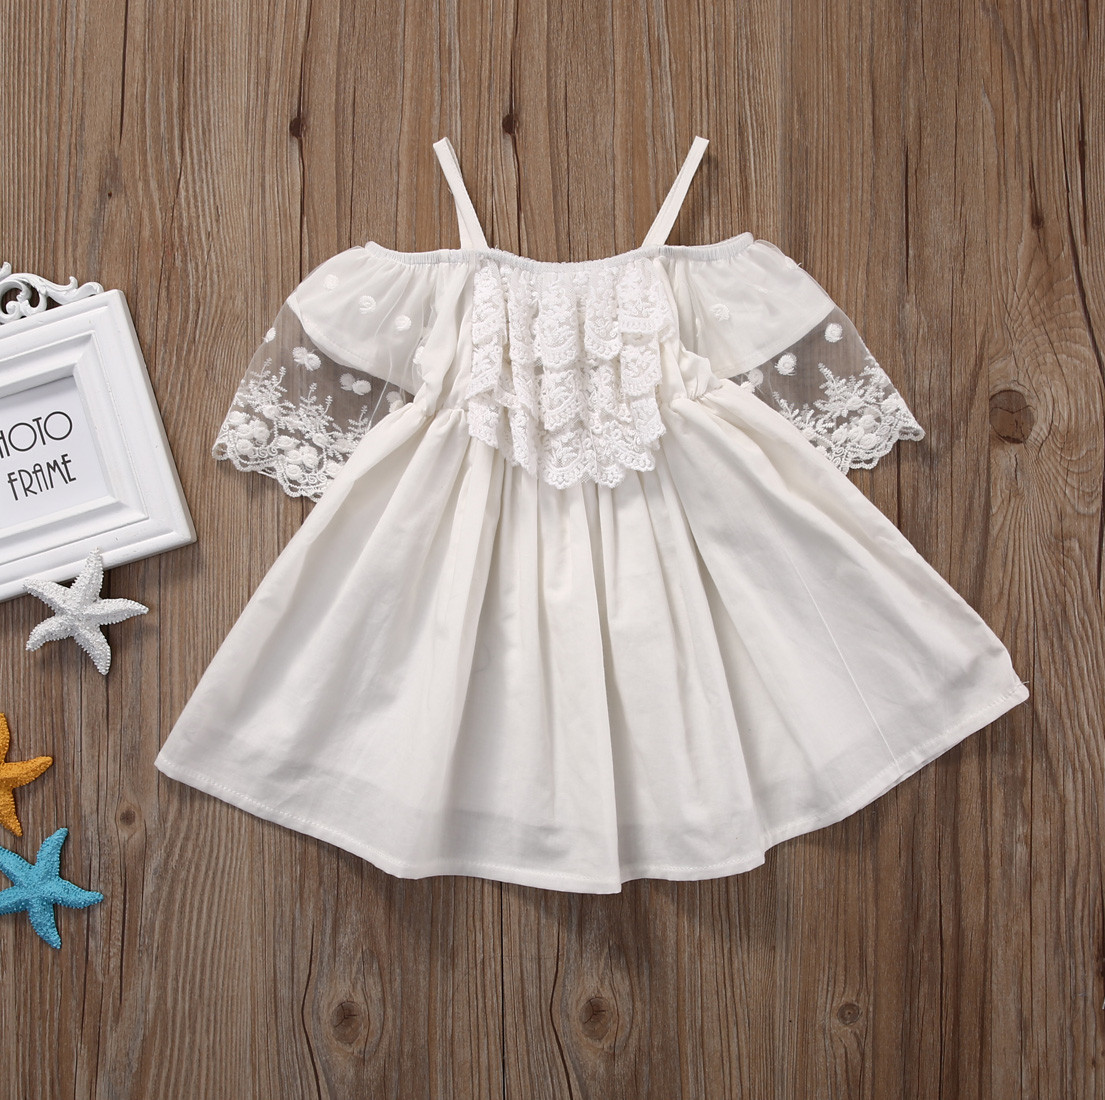 Lace Girl Clothing Princess Dress Kid Baby Party Wedding Pageant Formal Mini Cute White Dresses Clothes Baby Girls 6